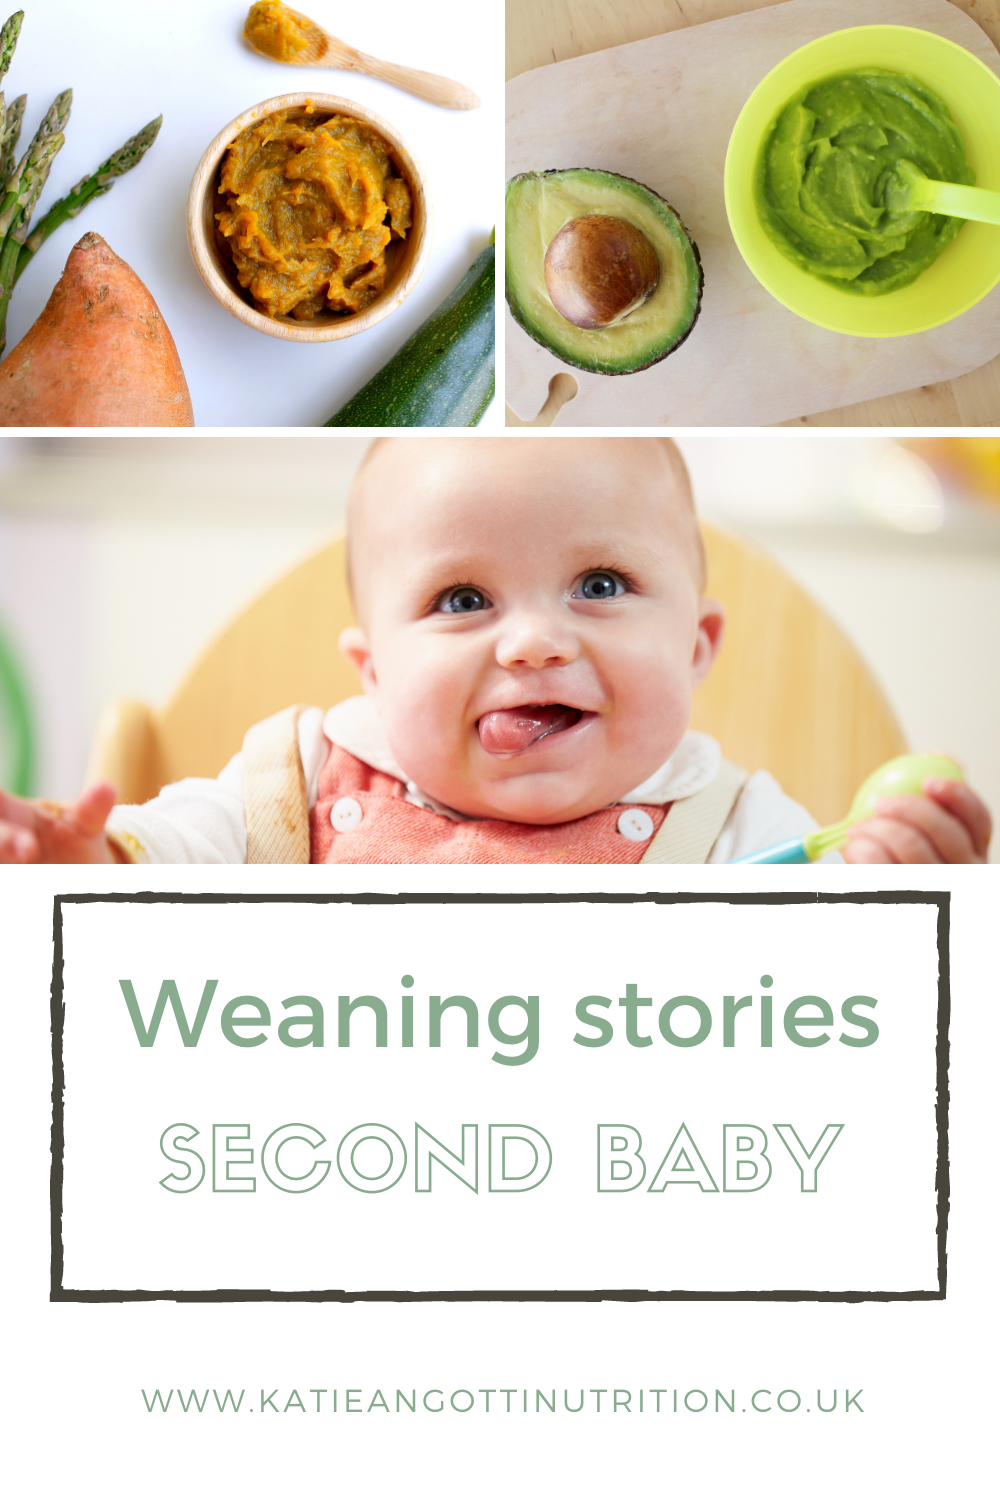 Baby in highchair having first weaning food. Sweet potato puree baby food. Avocado puree baby food